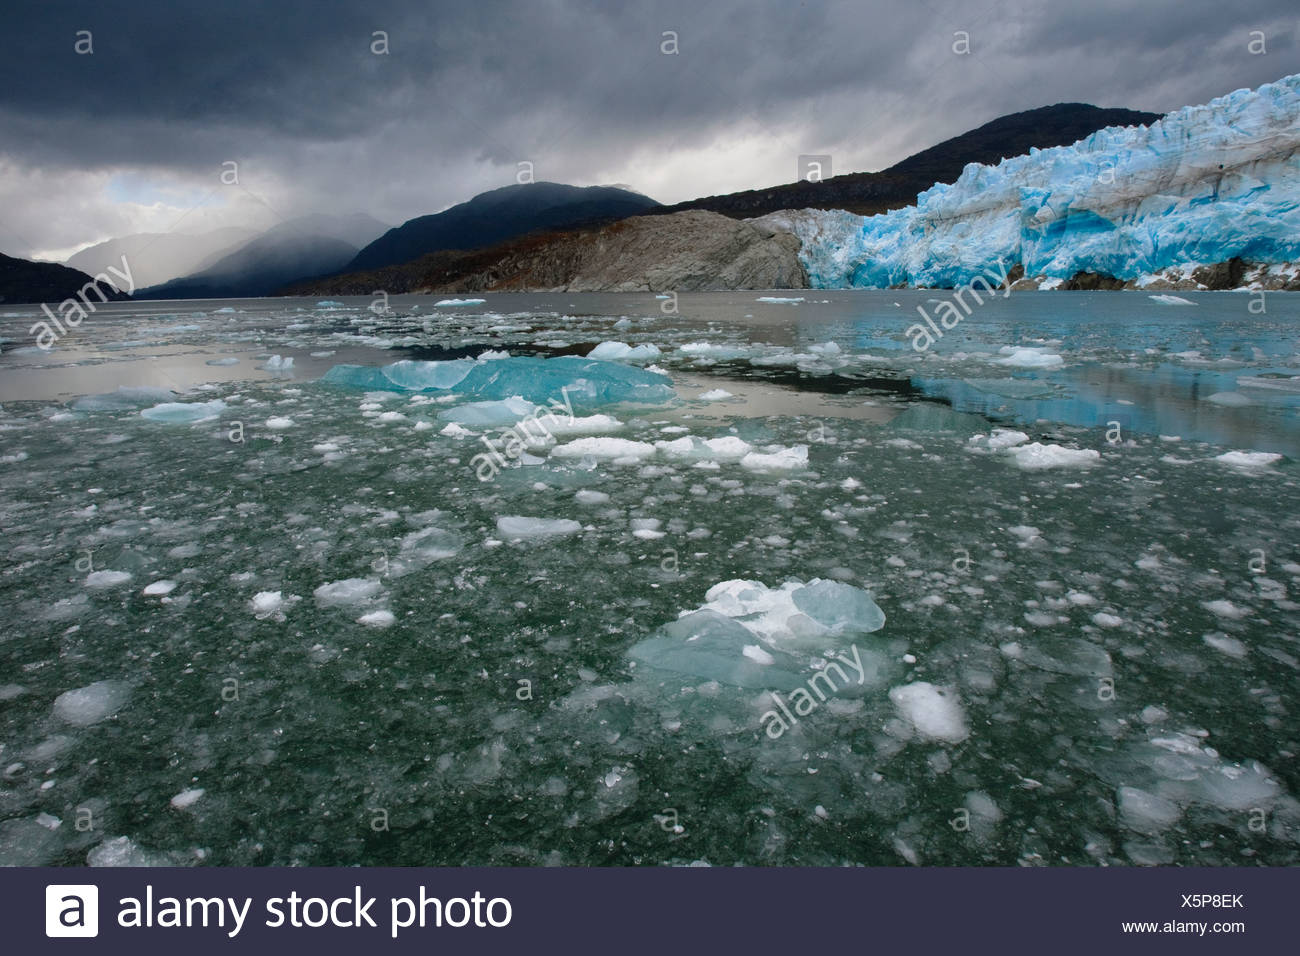 The retreating Iceberg Glacier in Bernardo O'Higgins National Park. - Stock Image